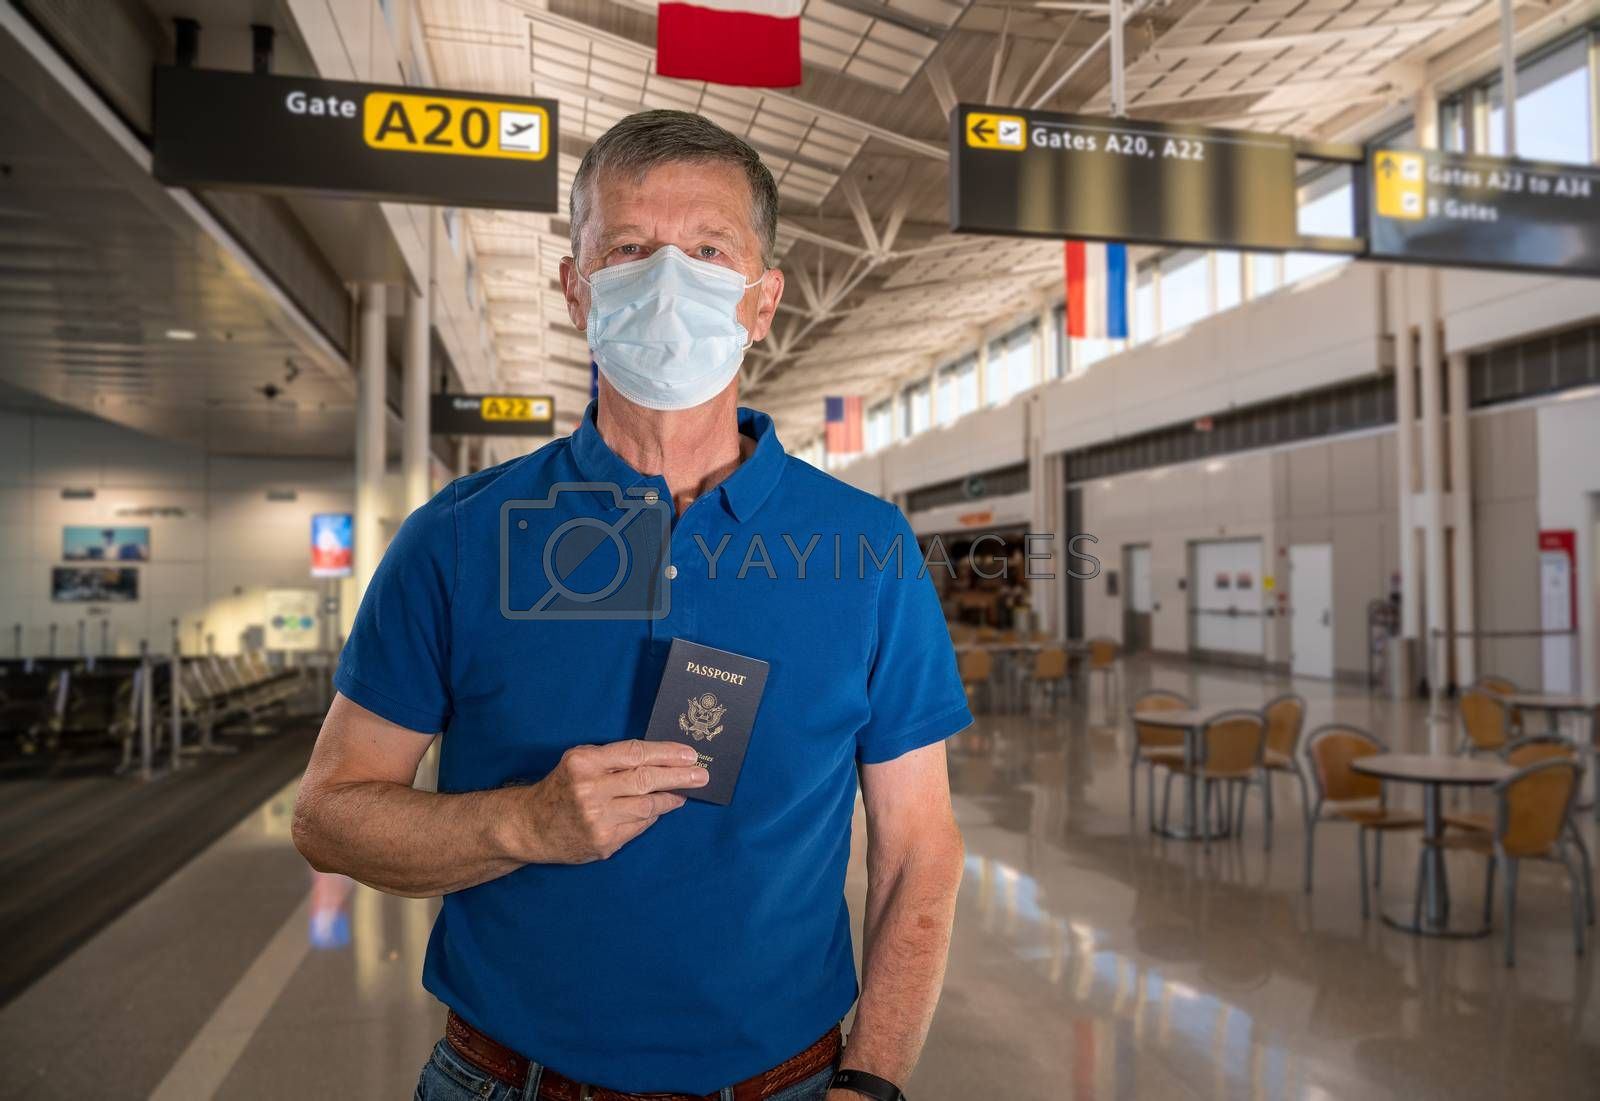 Mockup of airport terminal with casual senior adult holding passport and wearing mask against coronavirus